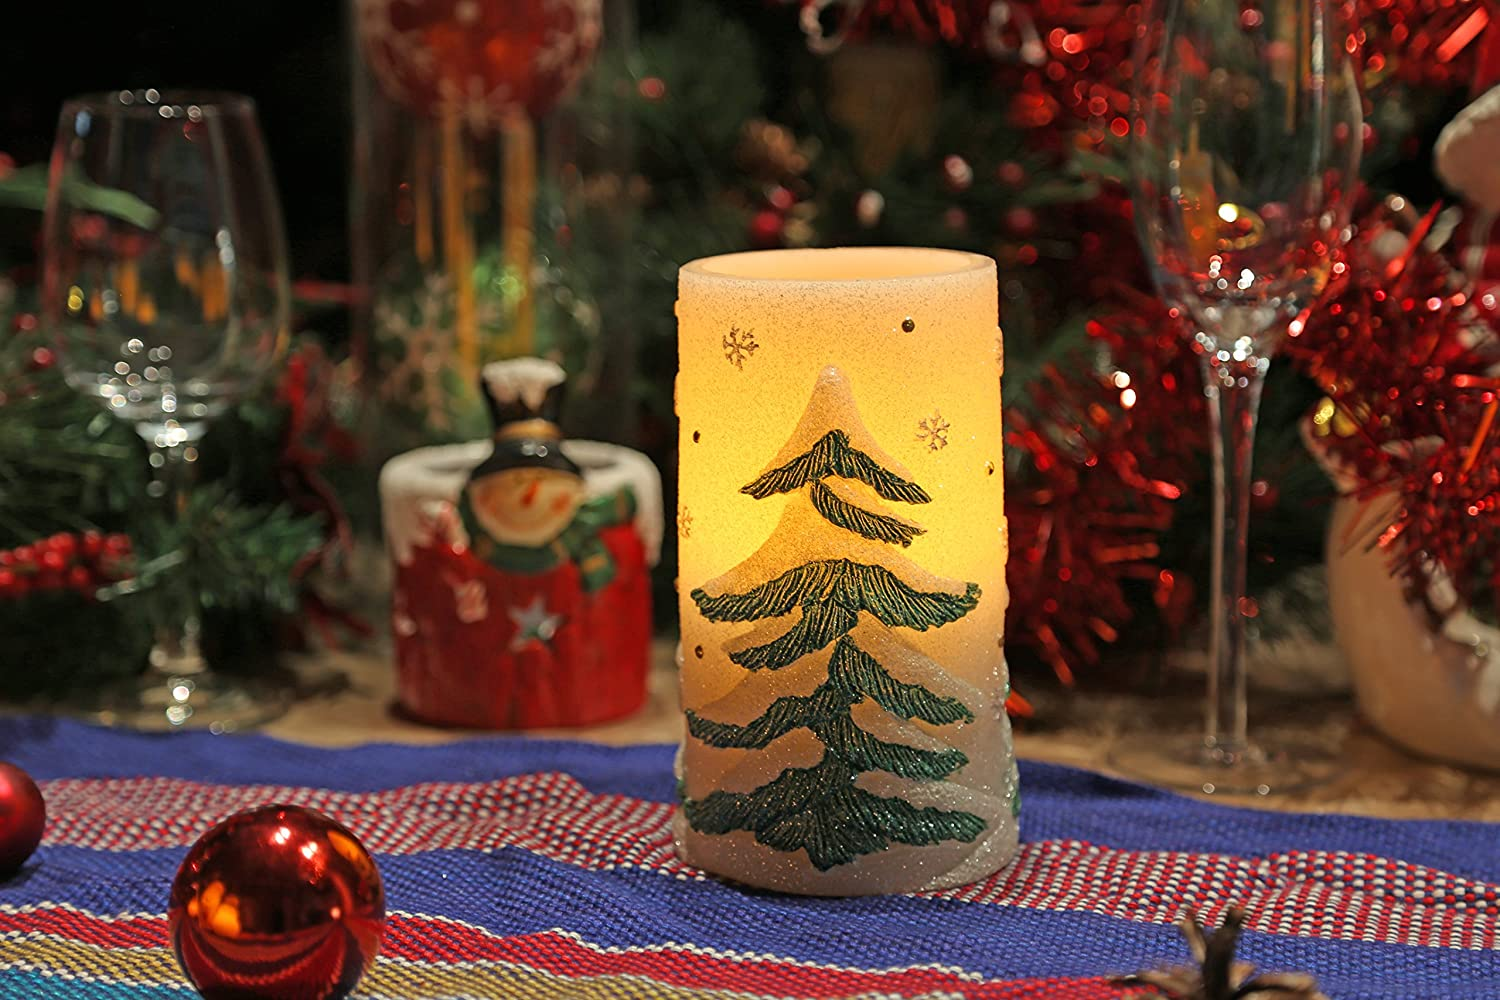 amazoncom christmas tree flameless led candle lights with timer 3x6 inches for home decor home improvement